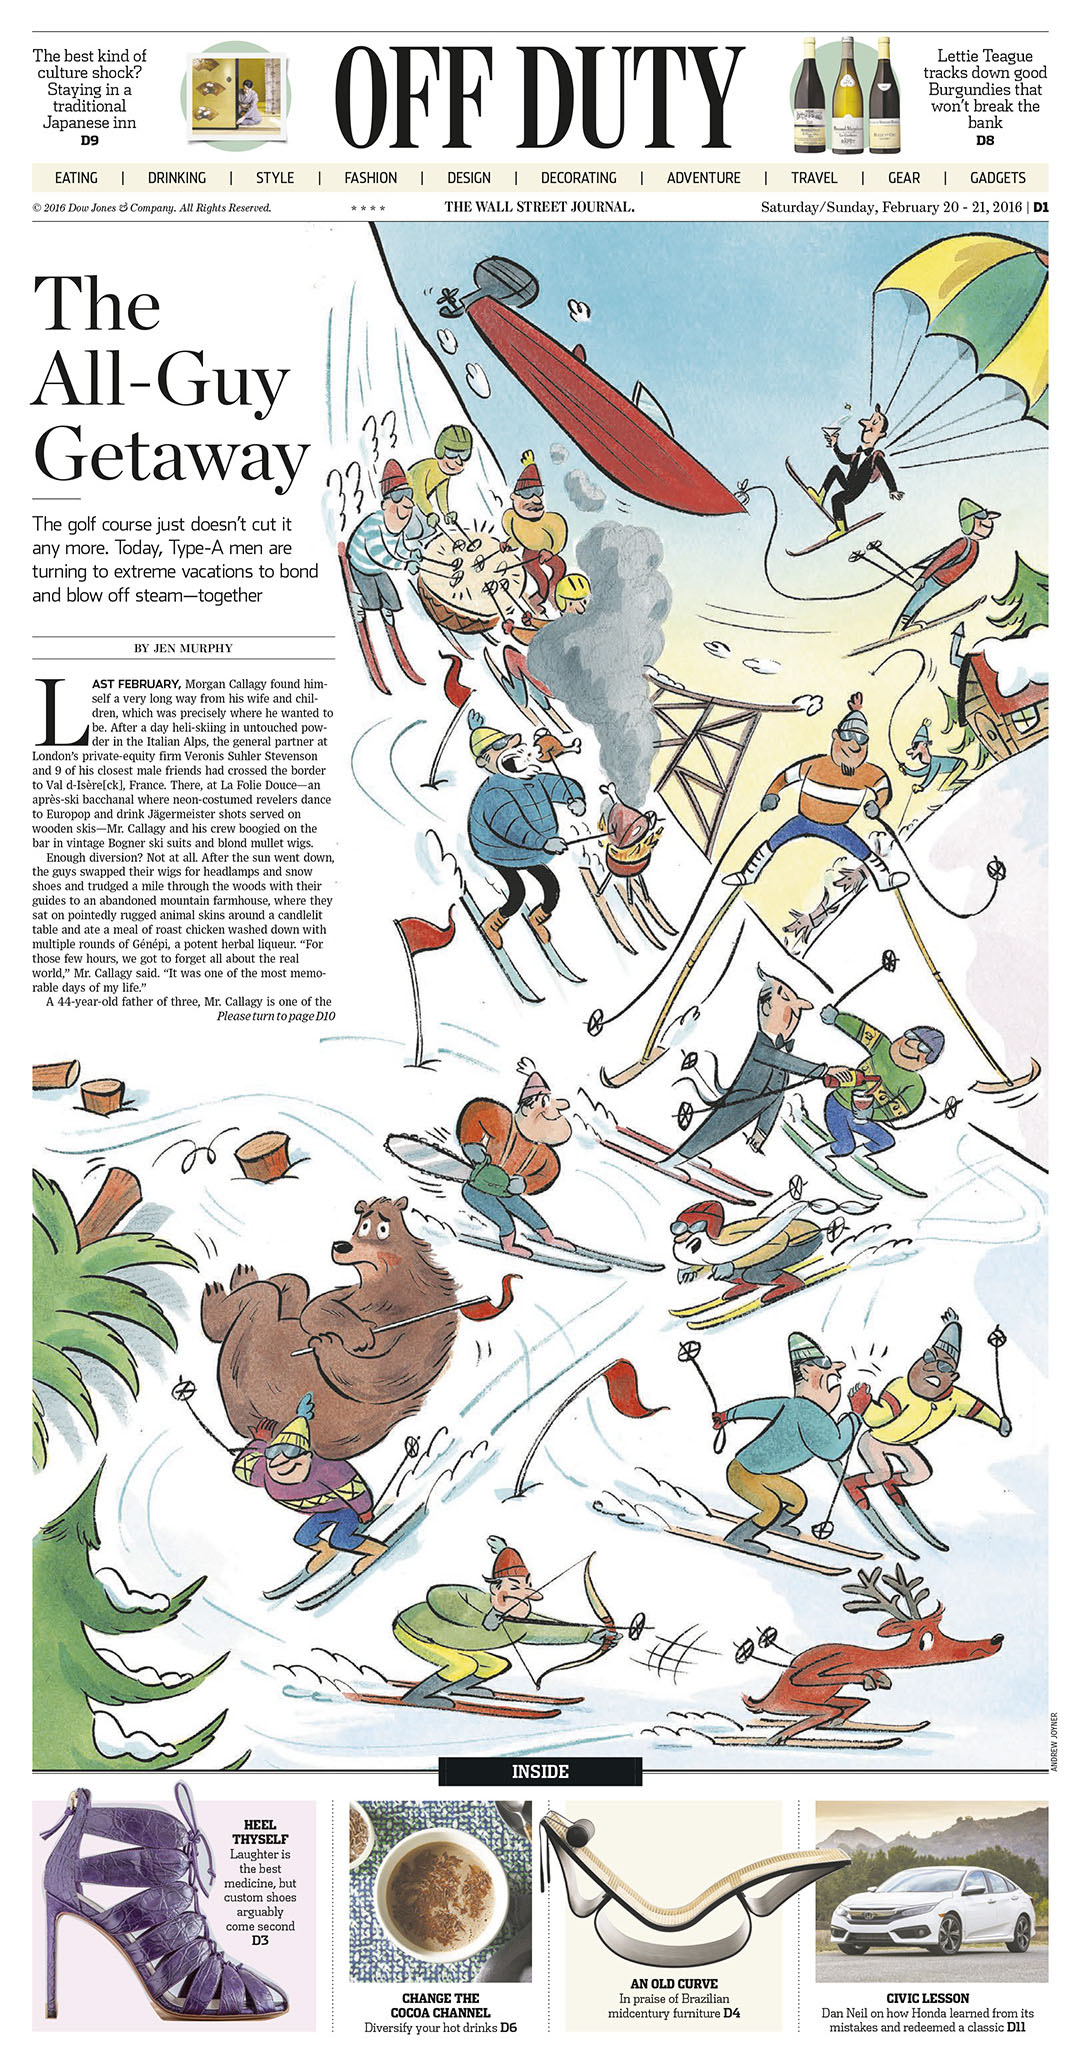 Cover illustrations for  The Wall Street journal  'off duty' section 2016.